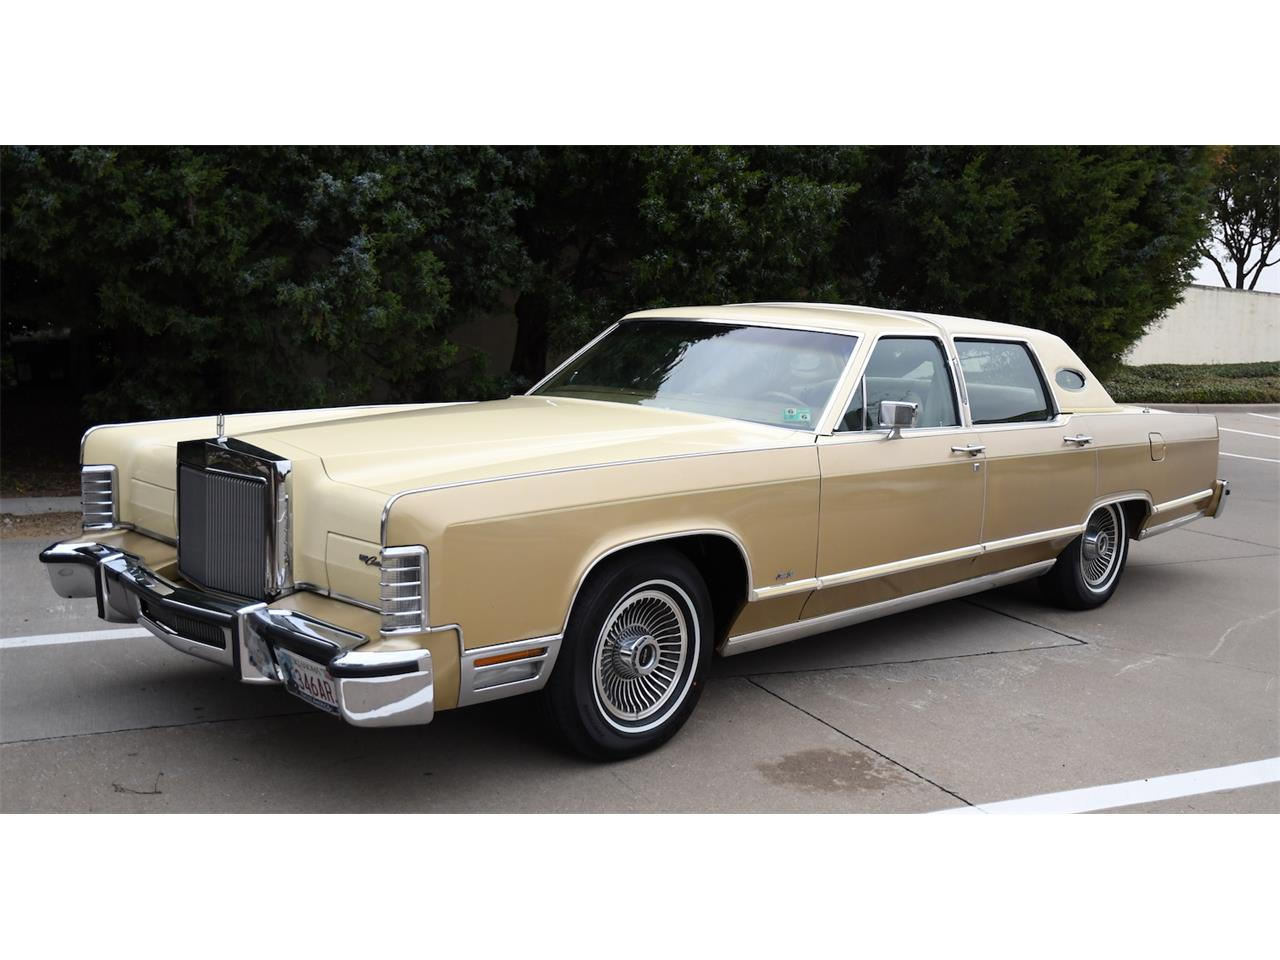 Large Picture of 1979 Lincoln Continental located in Allen Texas Auction Vehicle Offered by Duncan's Auctions - P157